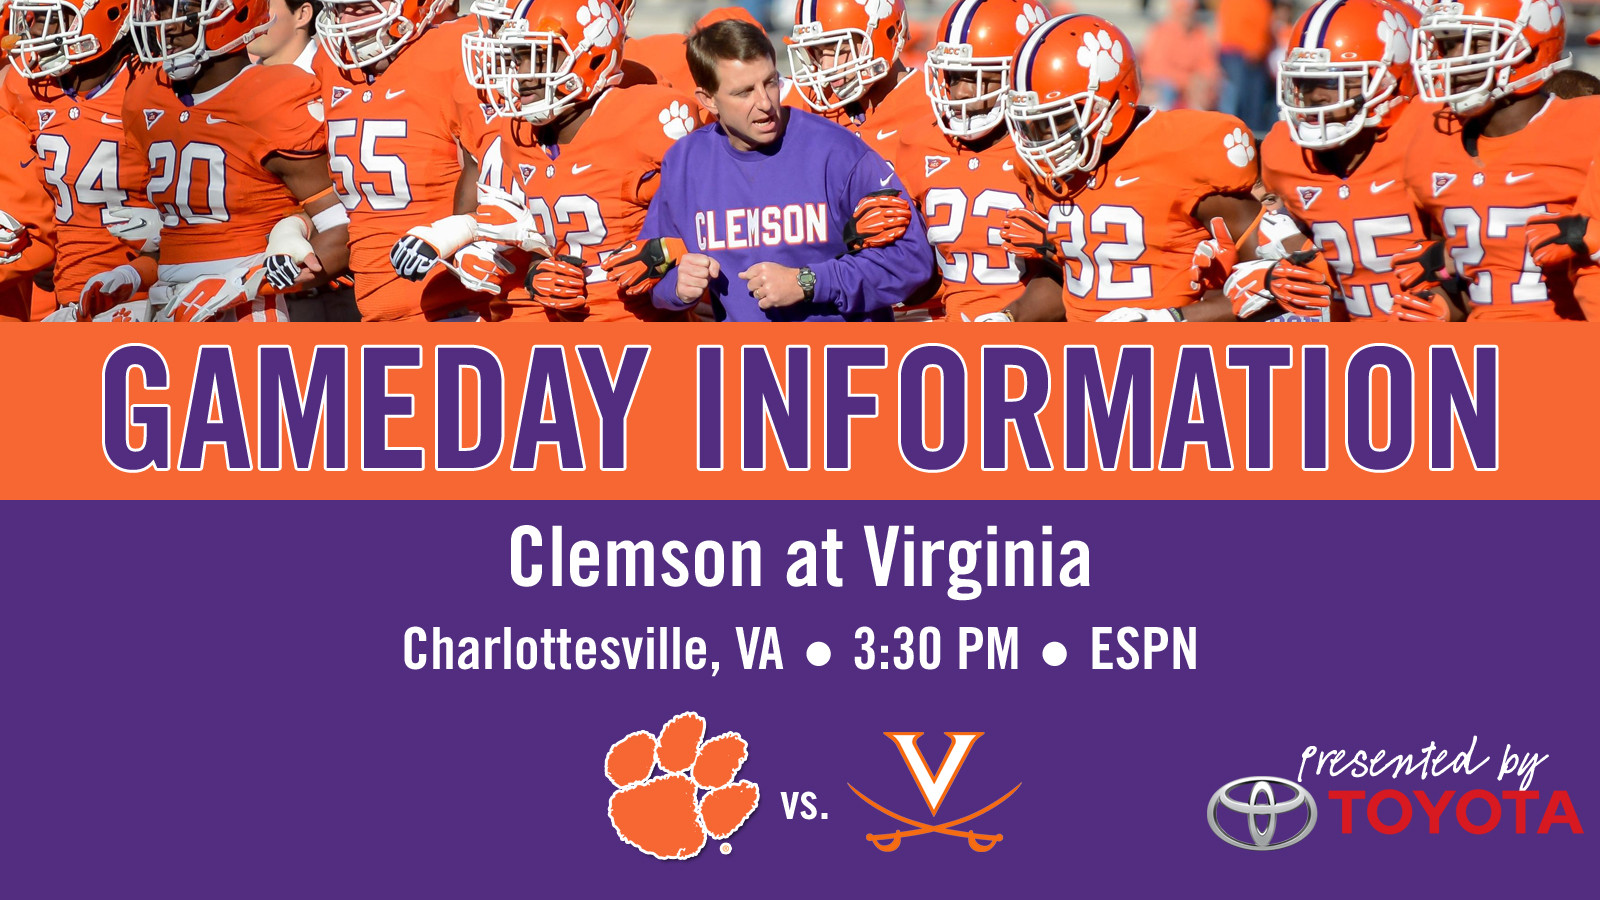 Clemson @ Virginia Football Gameday Information